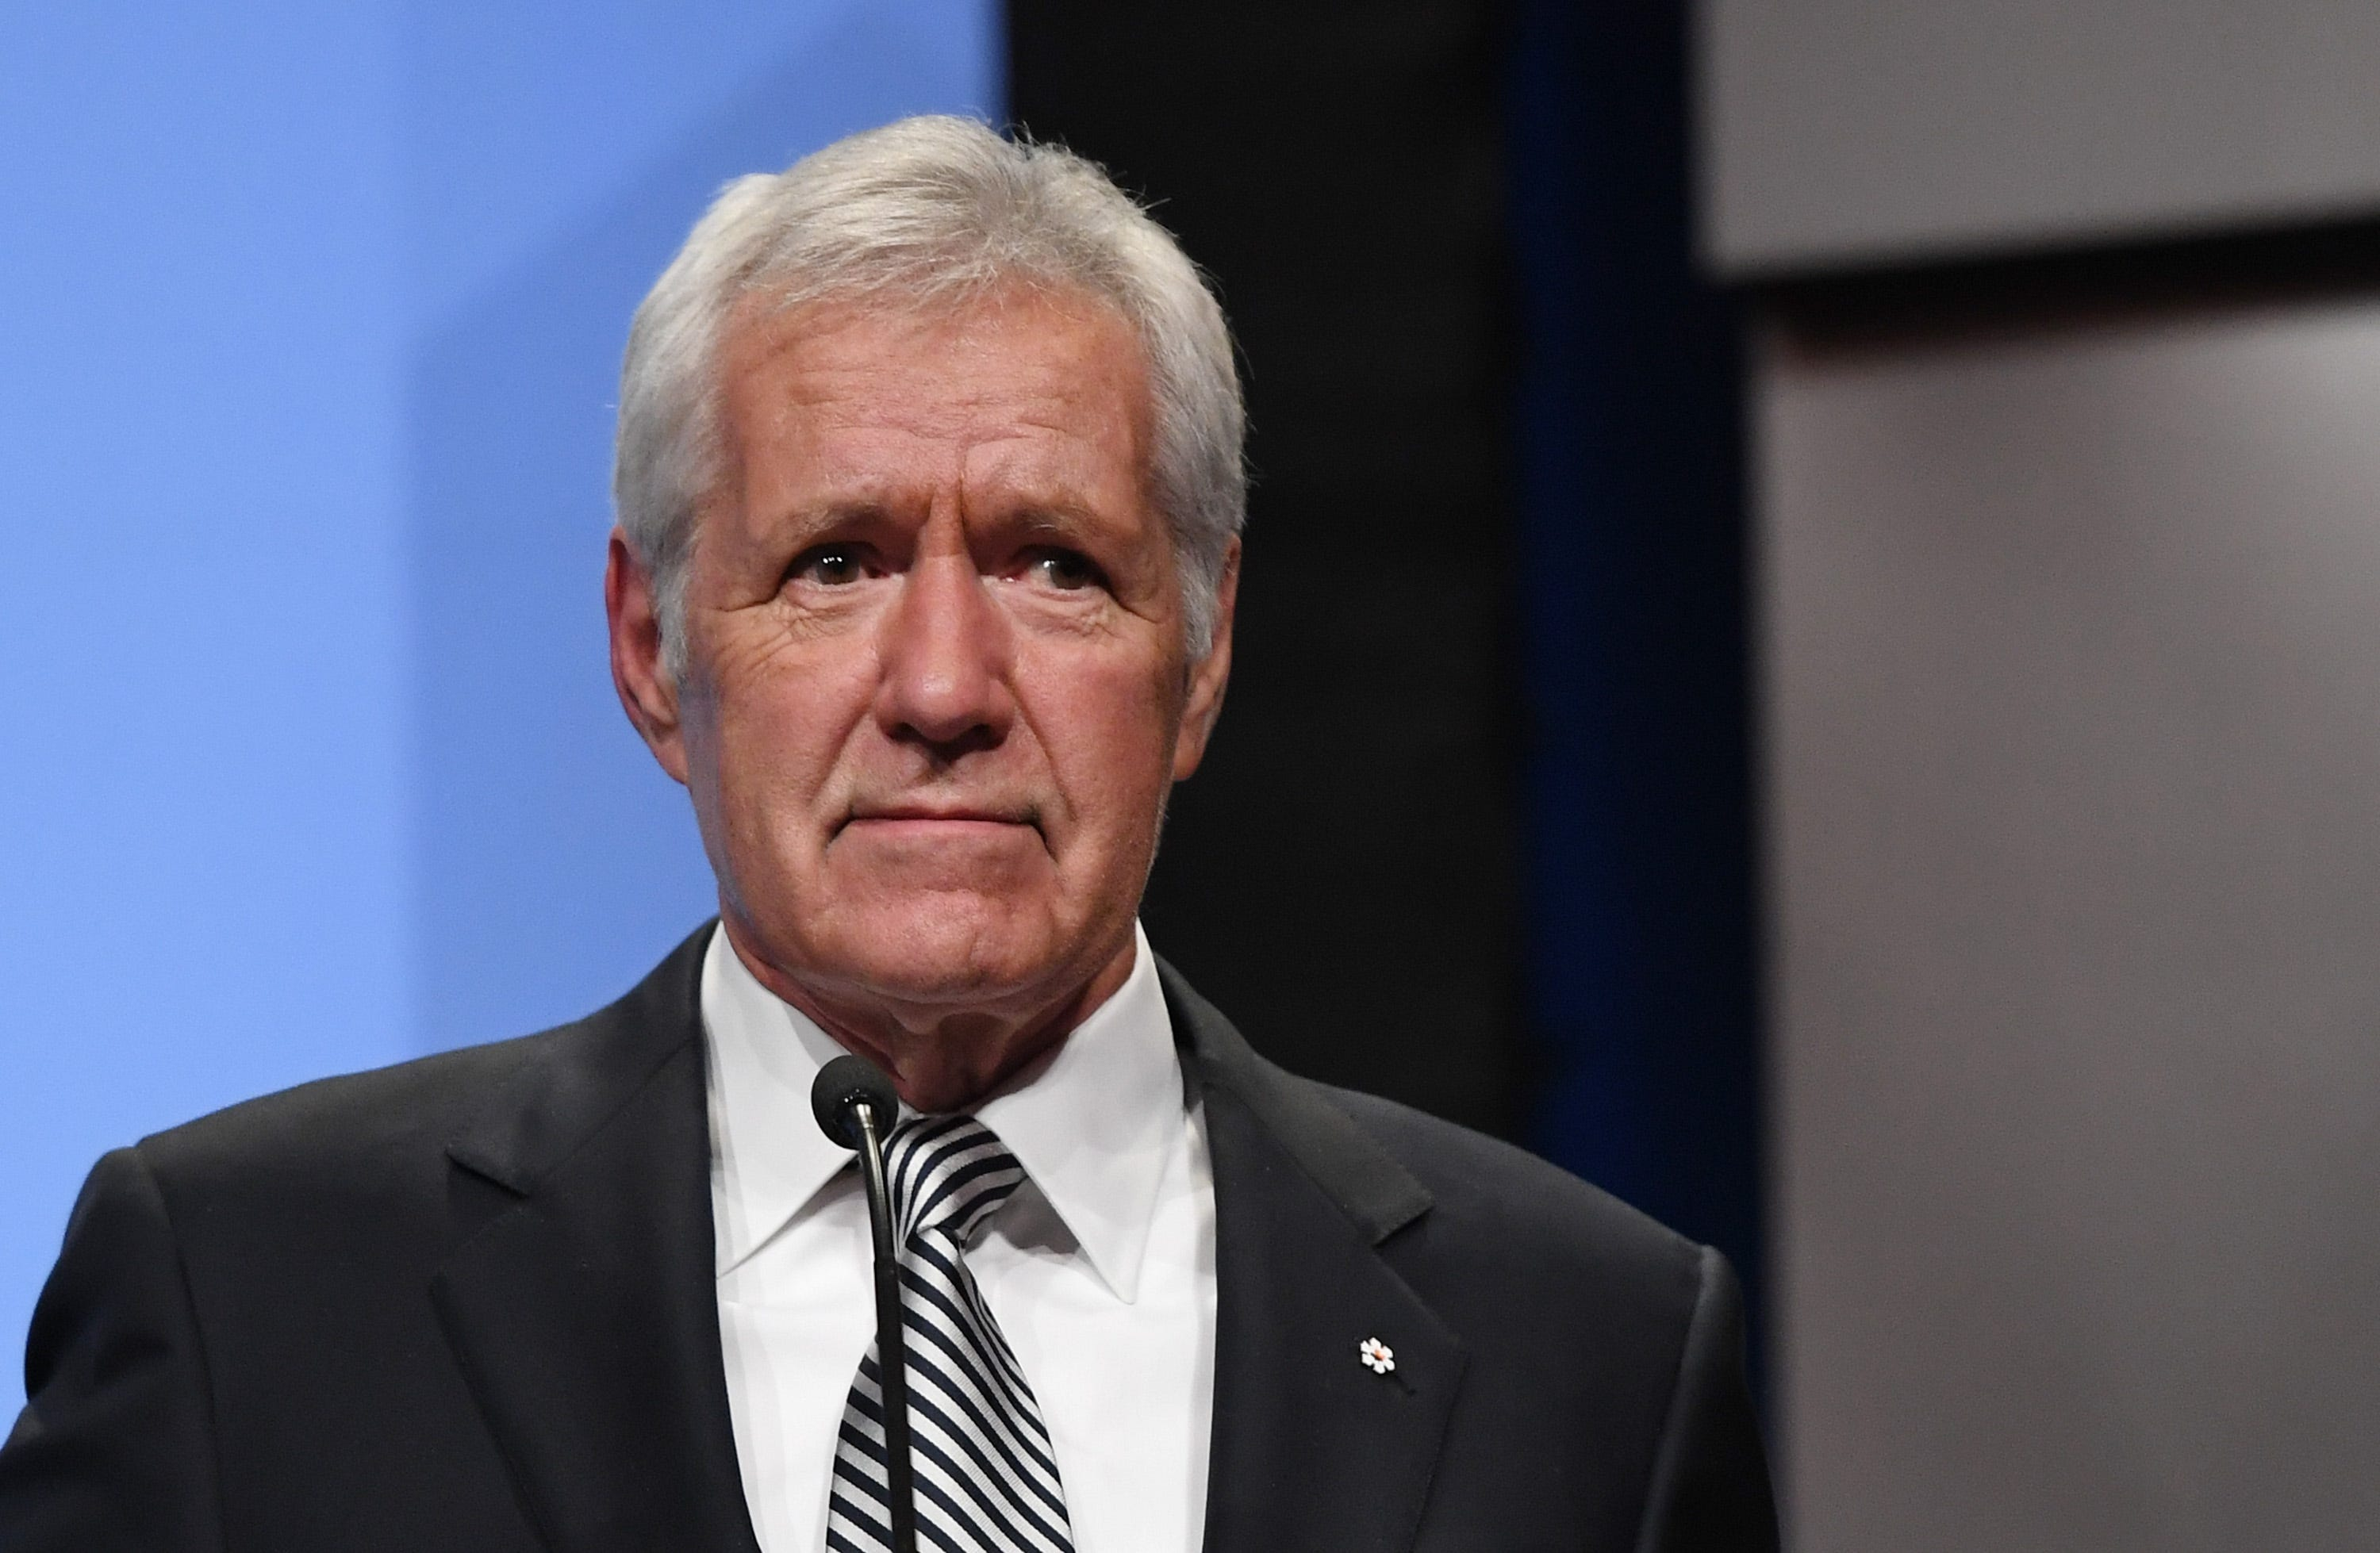 """Jeopardy!"" host Alex Trebek speaks as he is inducted into the National Association of Broadcasters Broadcasting Hall of Fame during the NAB Achievement in Broadcasting Dinner at the Encore Las Vegas on April 9, 2018 in Las Vegas, Nevada. ""Jeopardy!"" host Alex Trebek announced March 6, 2019 that he has been diagnosed with stage 4 pancreatic cancer."